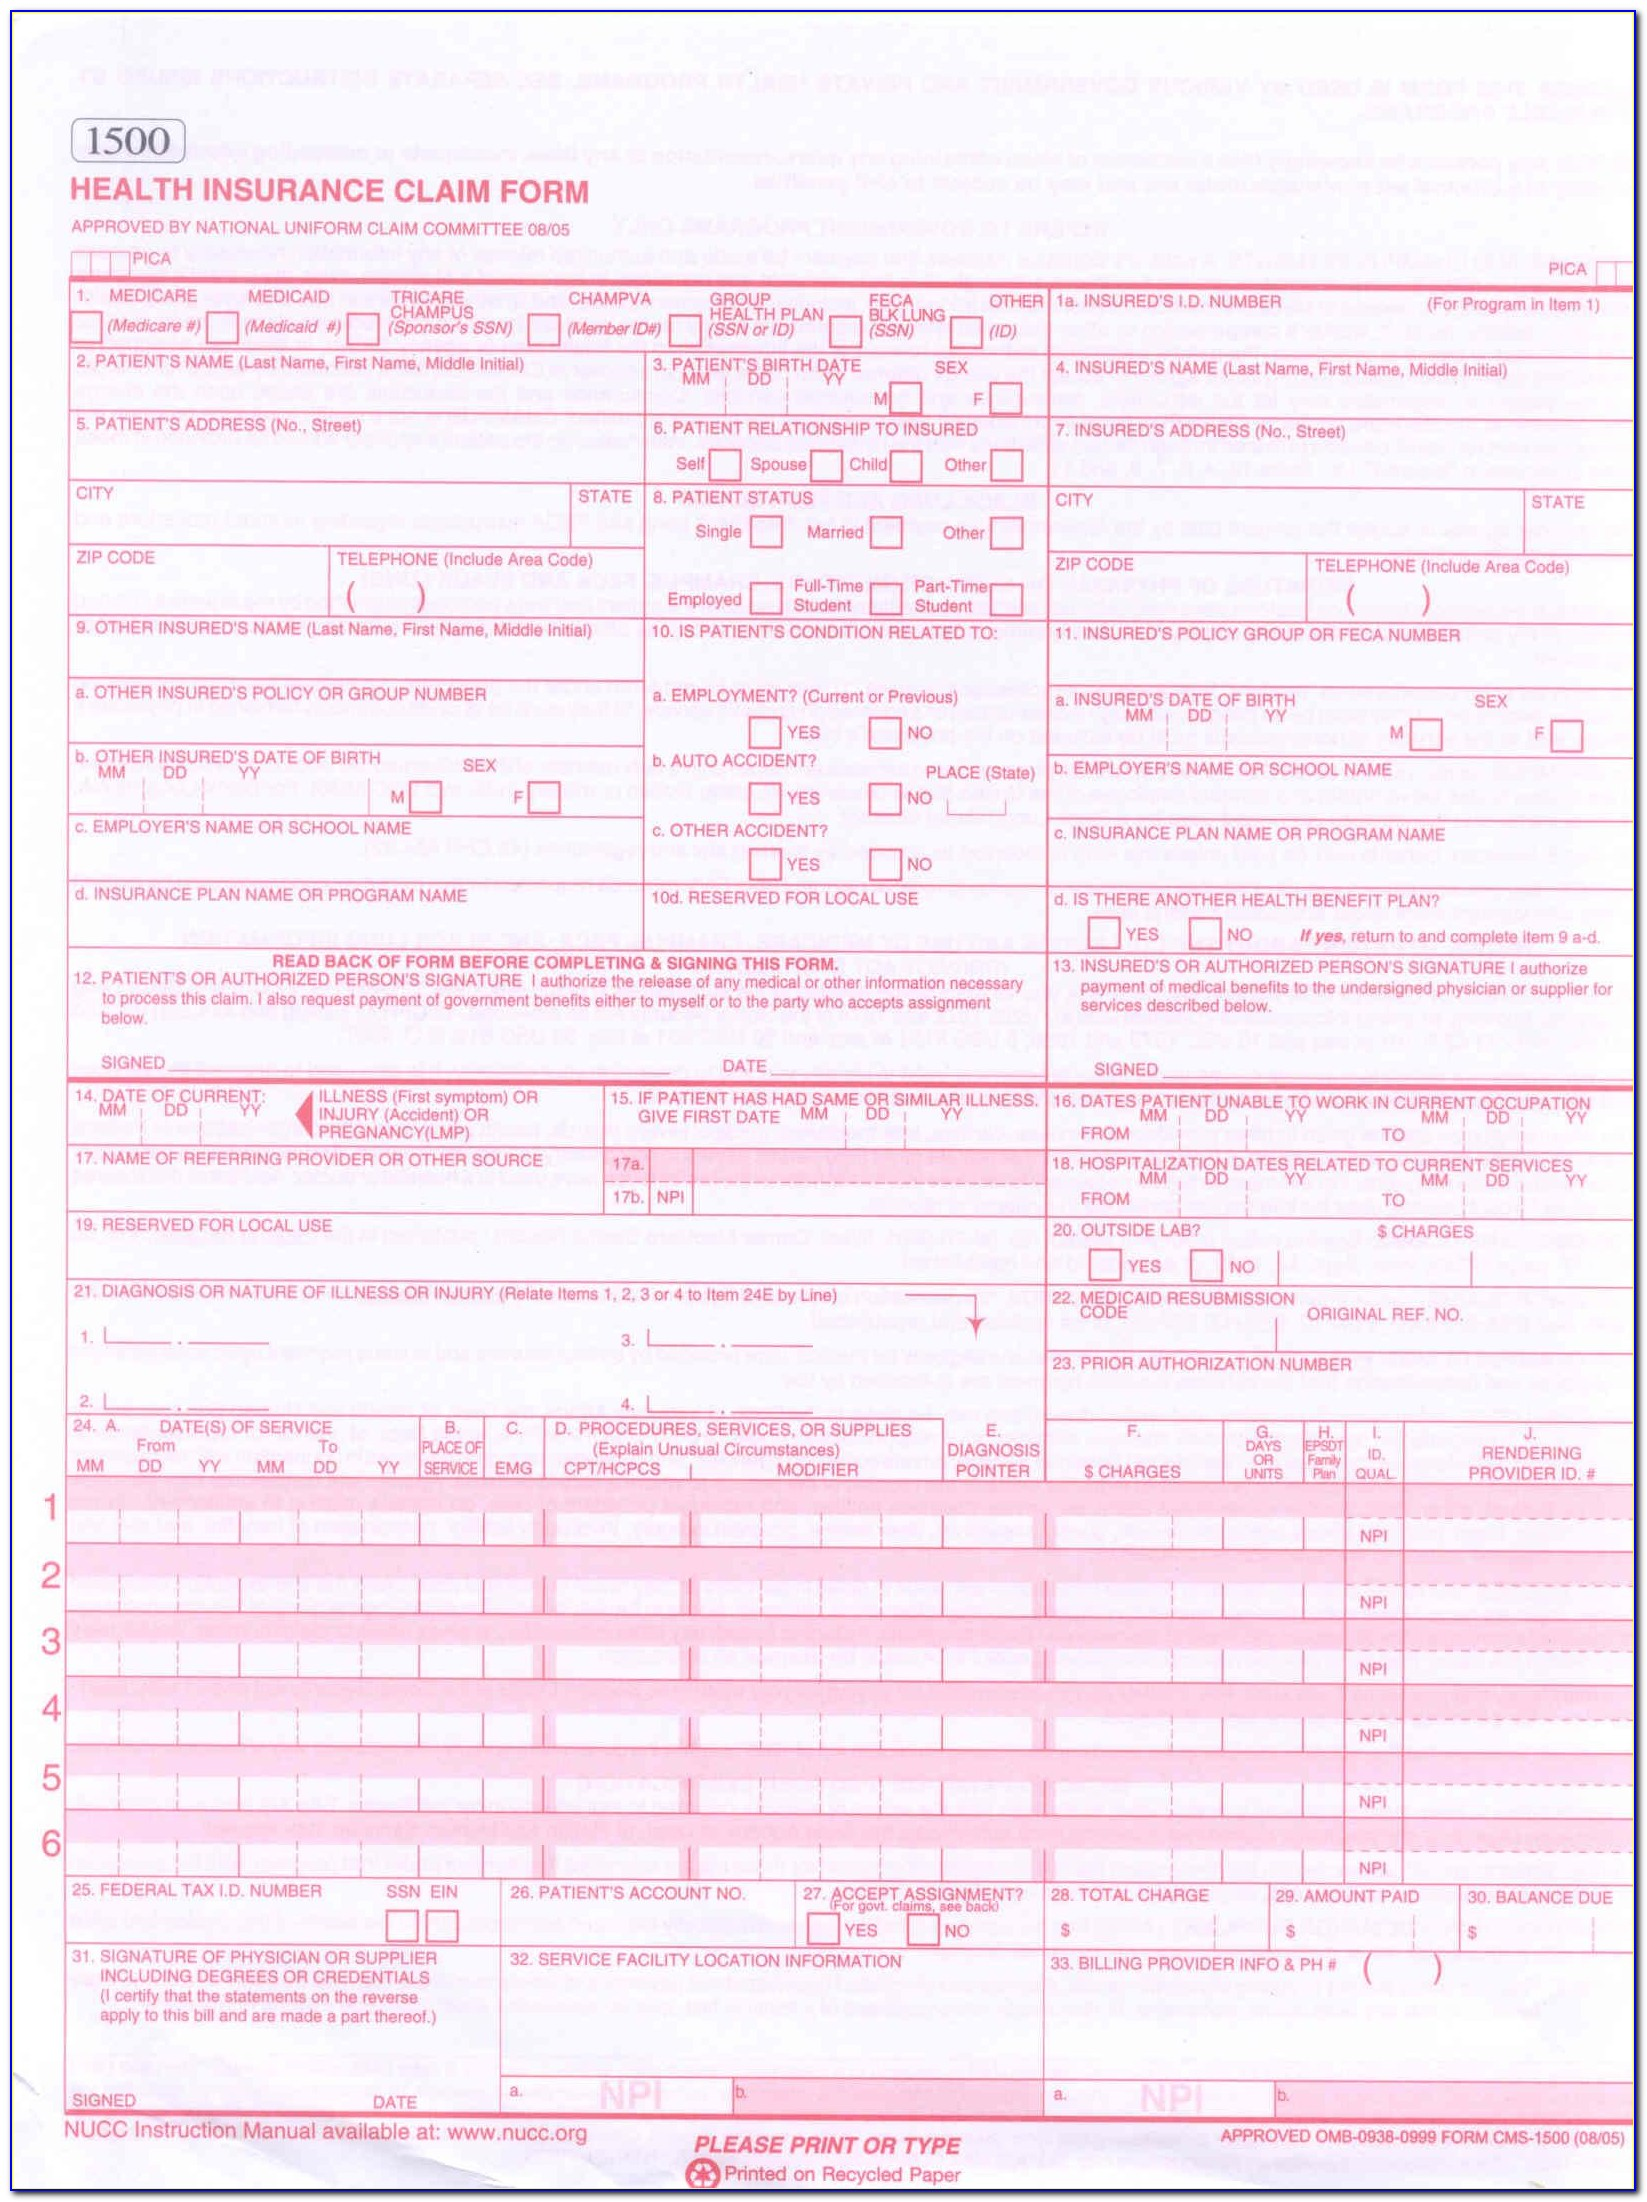 Cms 1500 Claim Form Worksheet